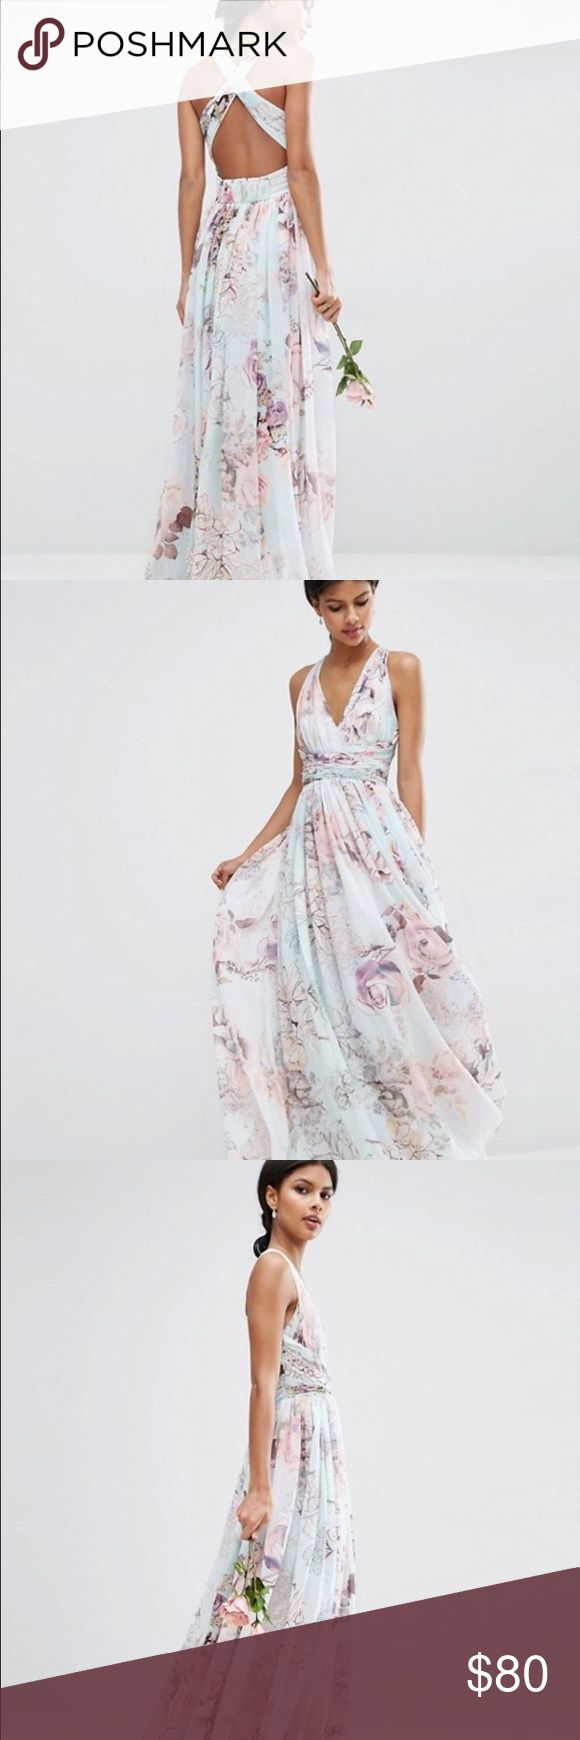 ASOS WEDDING Hollywood Maxi Dress: Soft Rose Print Never Worn, tags still on! Gorgeous floral chiffon print dress. ASOS Dresses Maxi